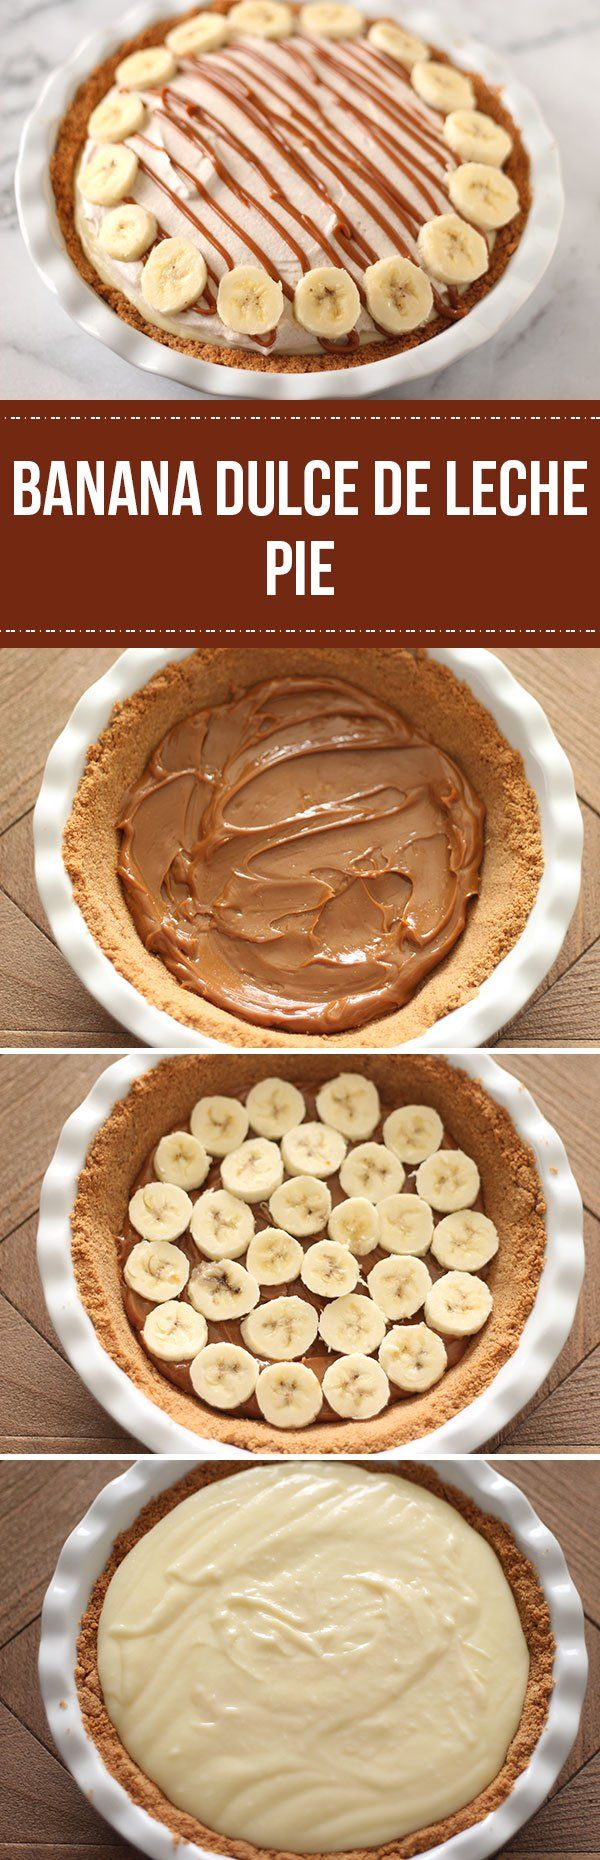 Banana Dulce de Leche Pie - Out of this world!!!!